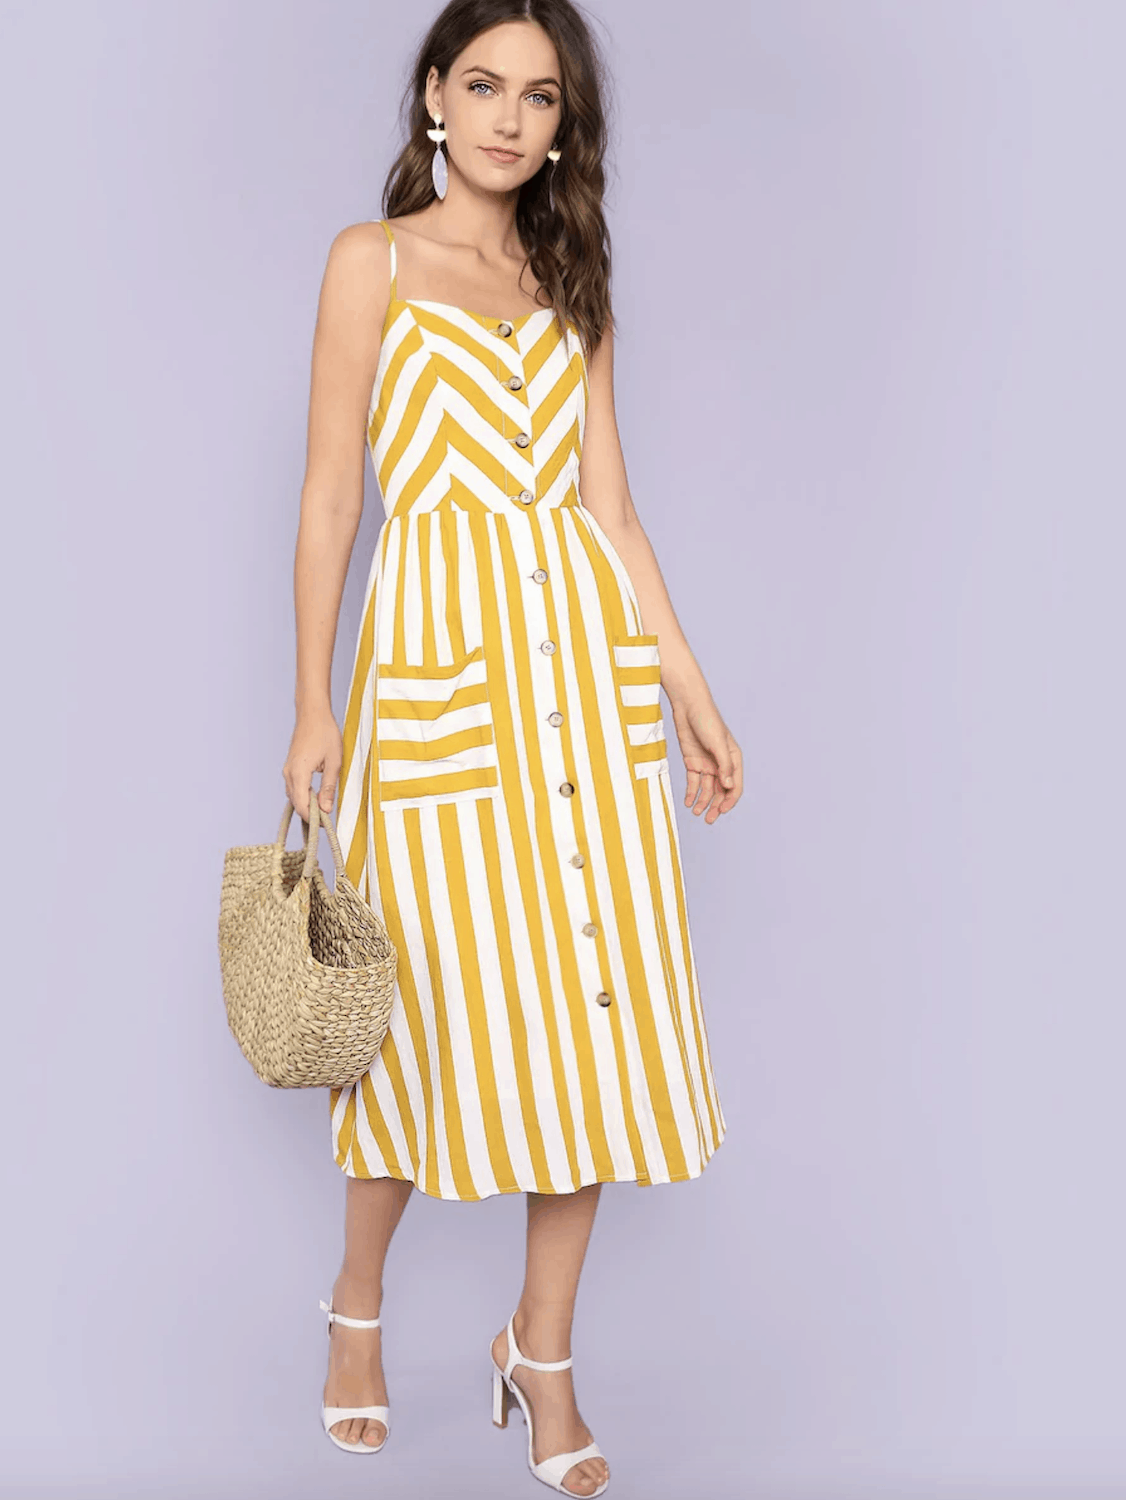 Amalfi Coast Outfits Positano Italy Dresses Button Through Shirred Back Pocket Striped Cami Dress 2